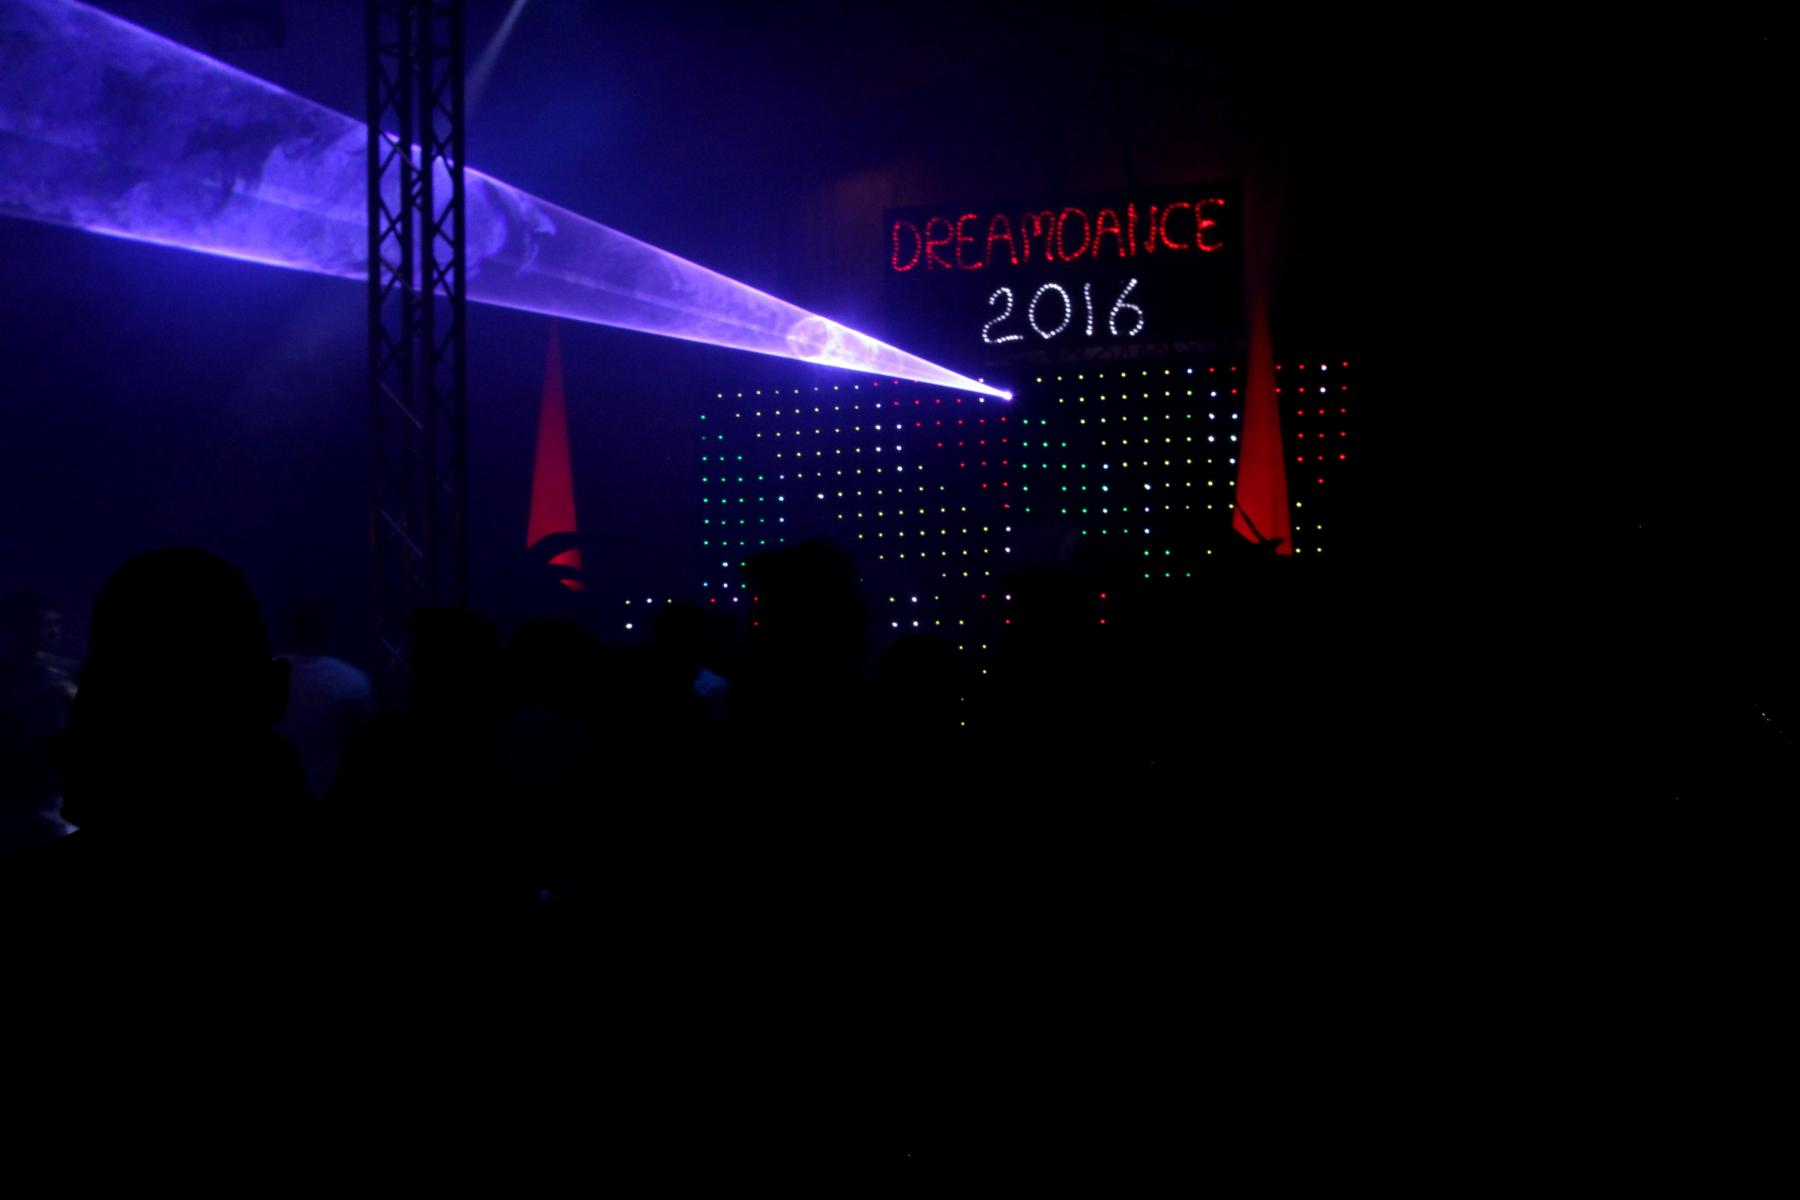 dreamdanceparty2016samstag32